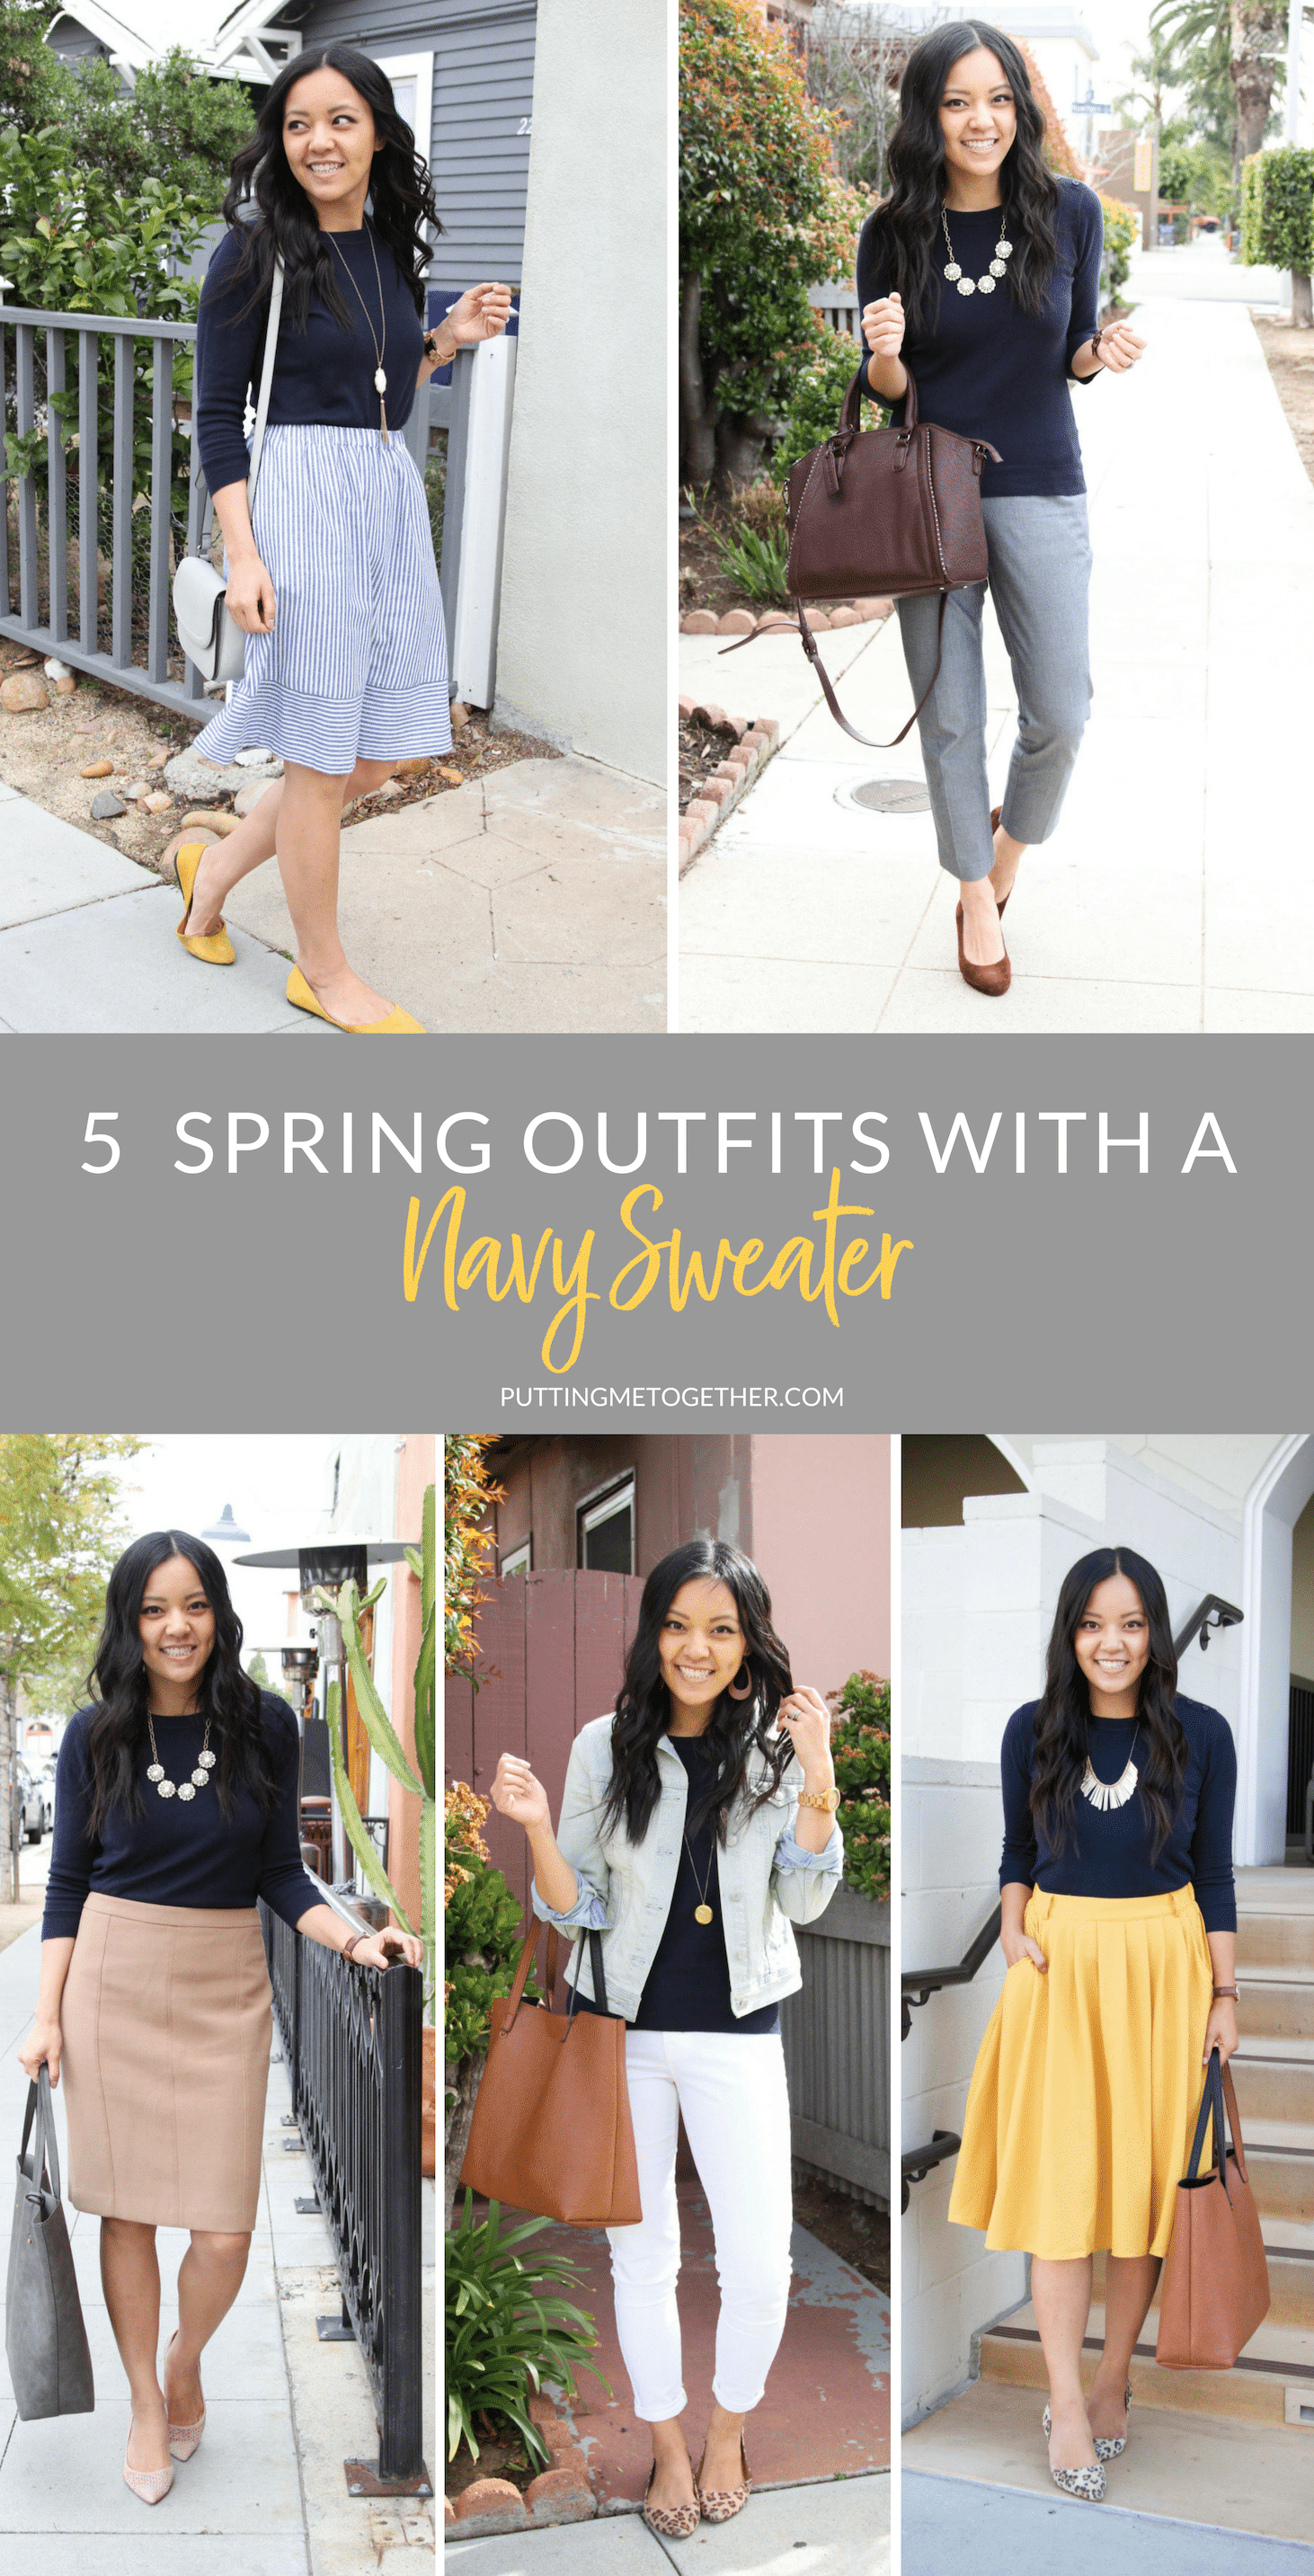 5 Spring Outfits With a Navy Sweater